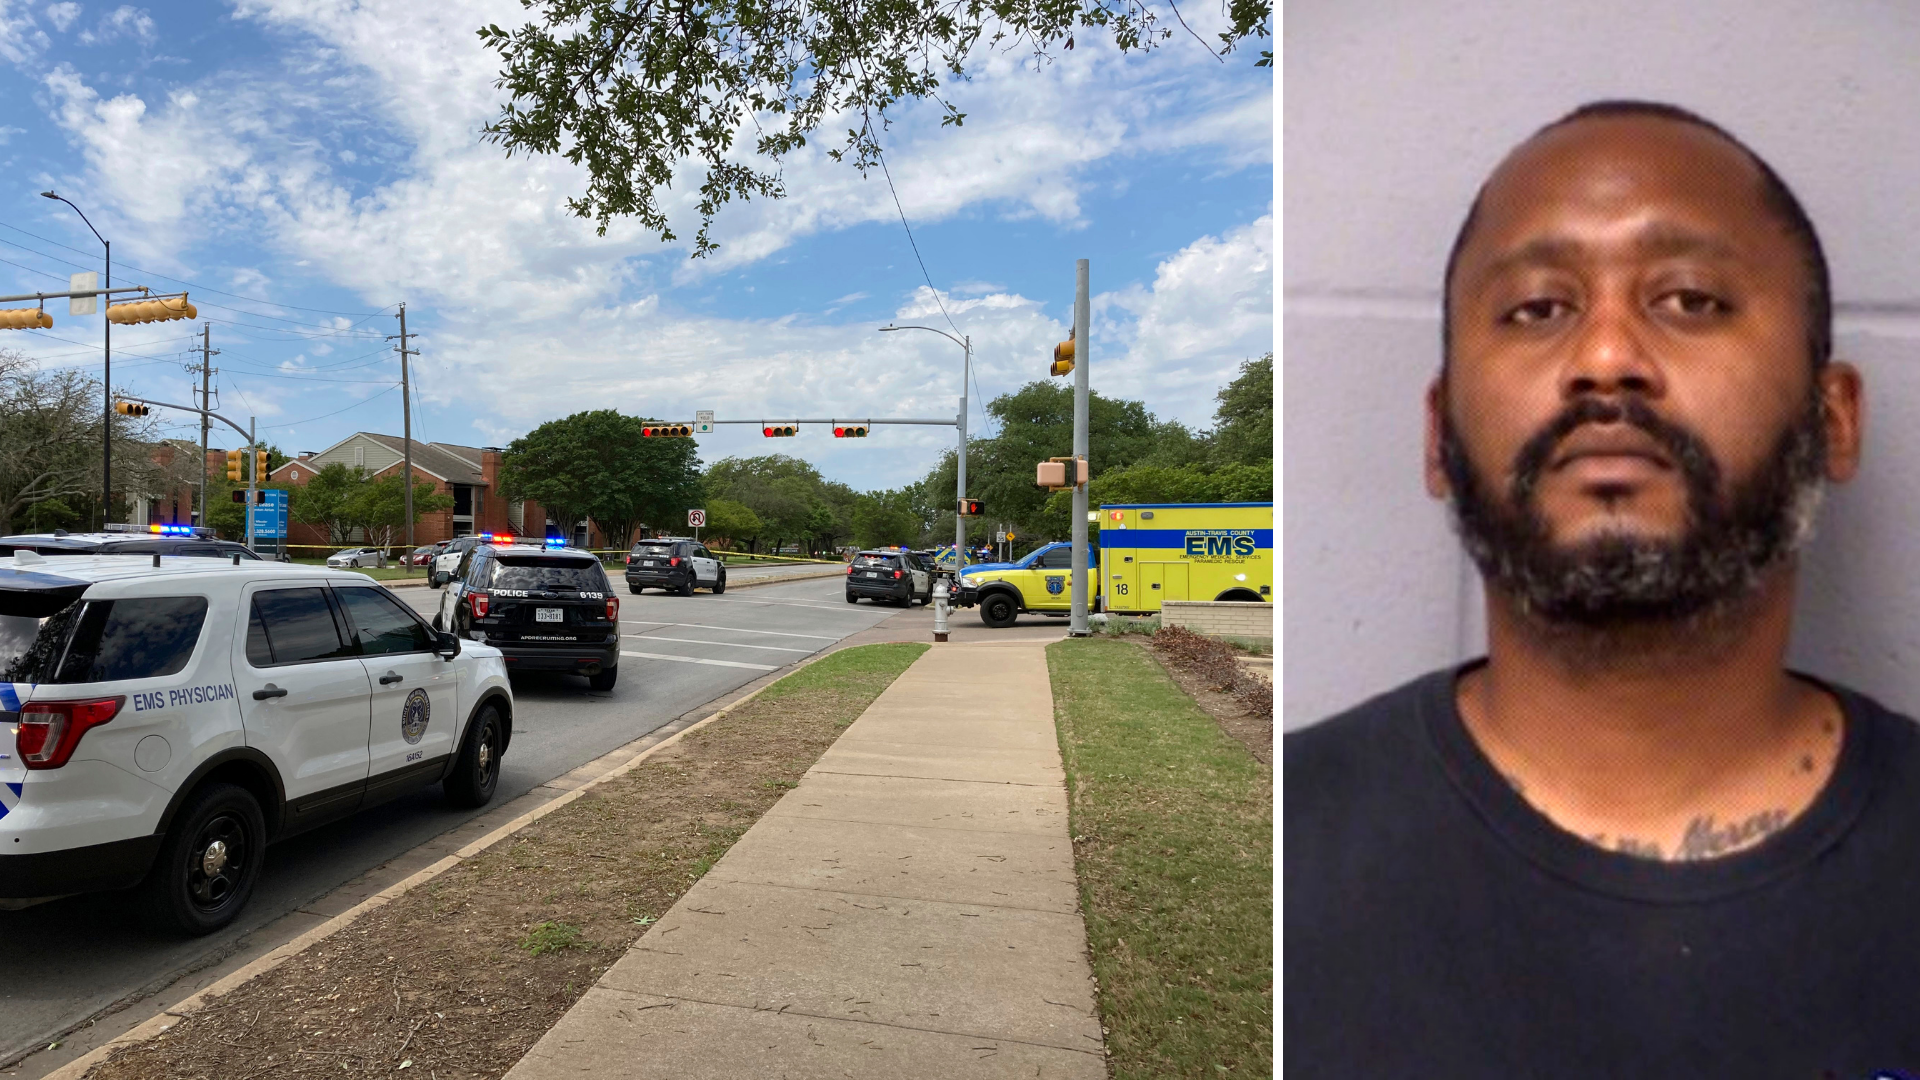 Texas shooting scene, suspect